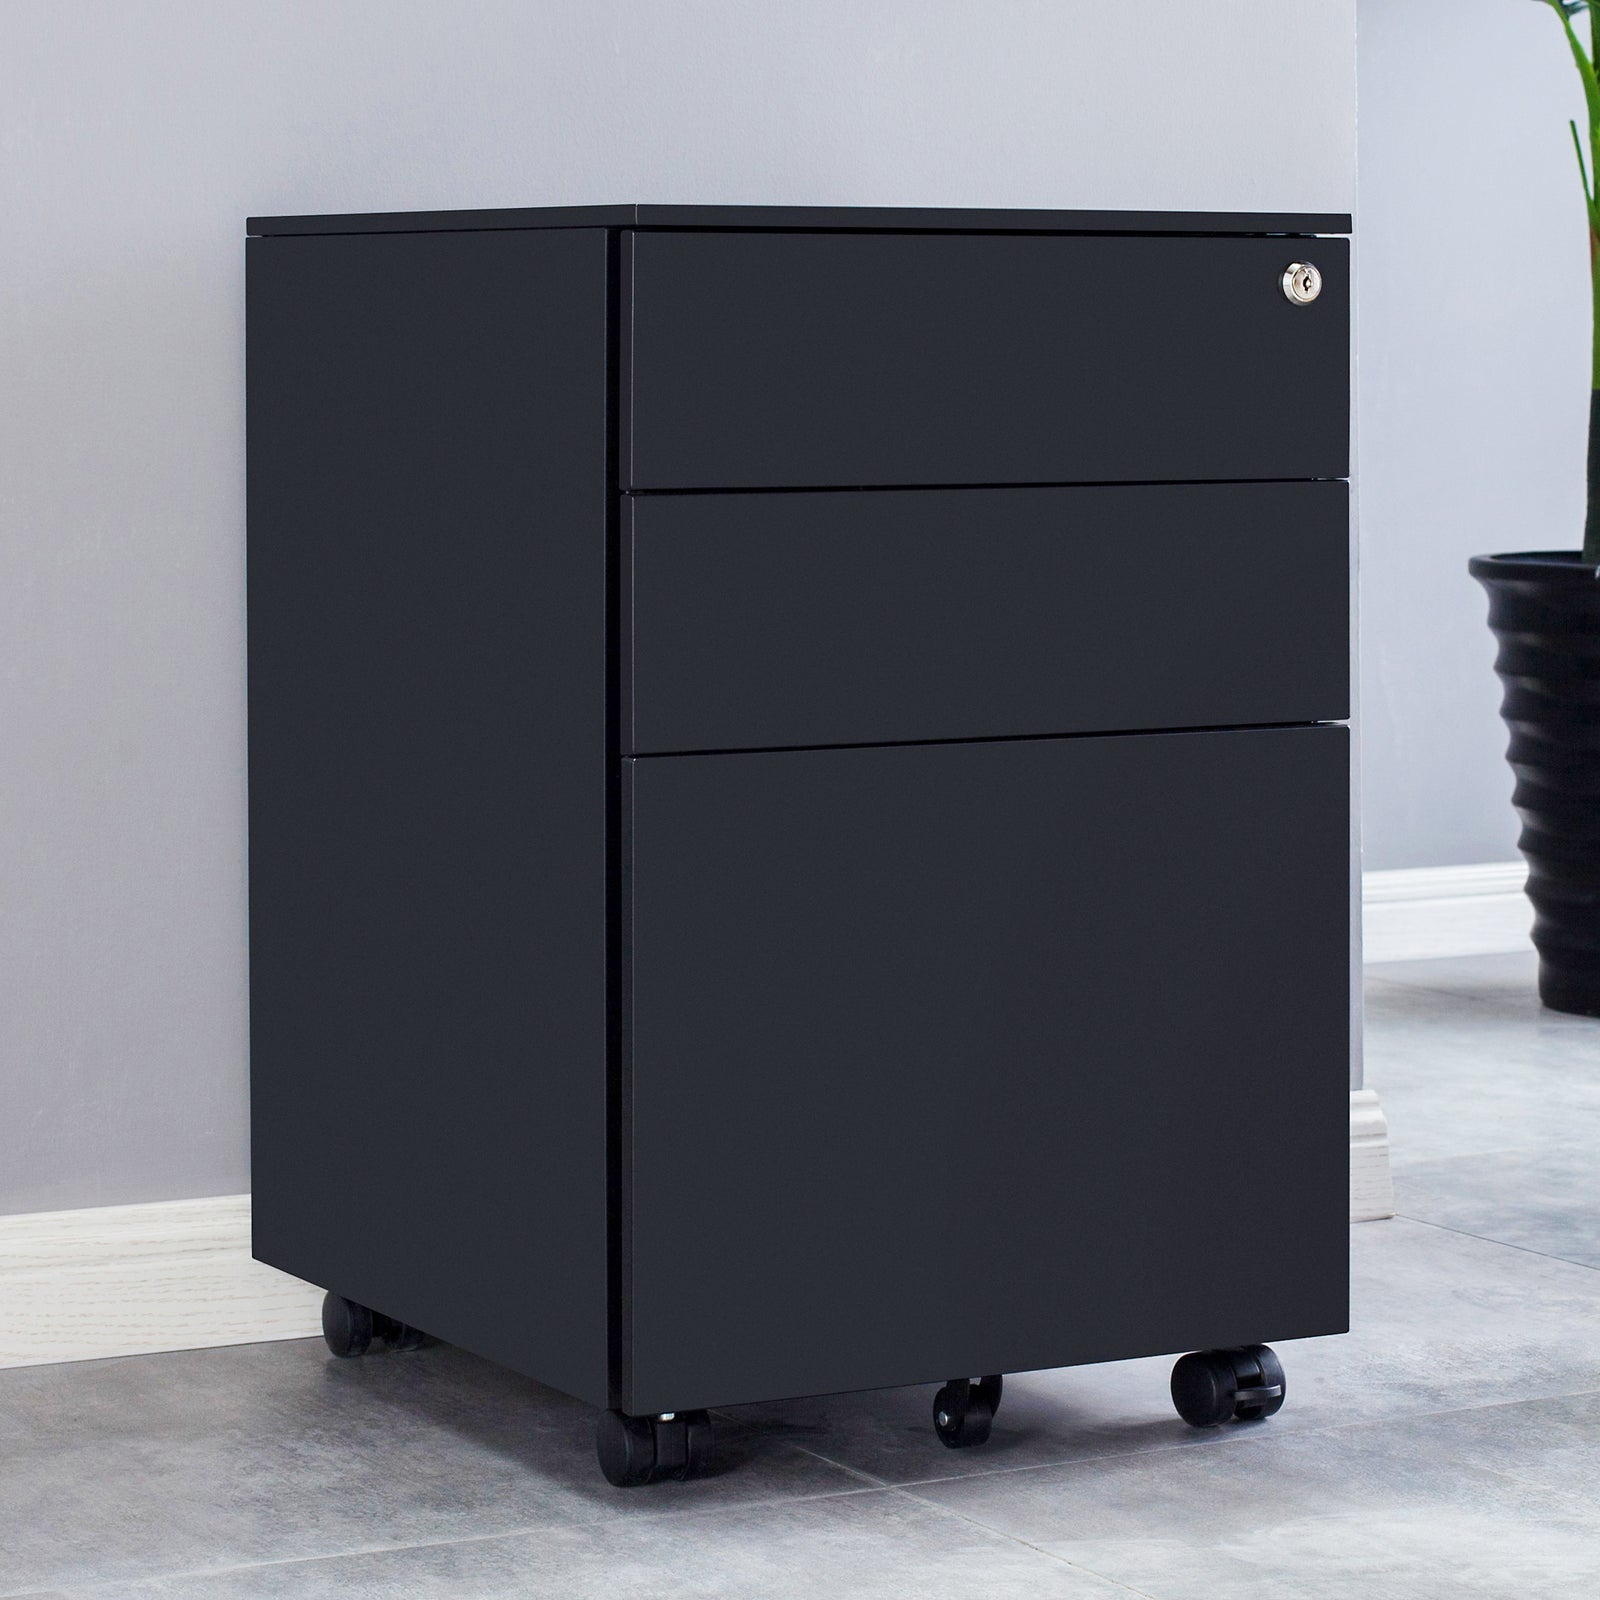 Movable 3 Drawers Metal File Cabinet Lockable Pedestal Files BH25202810 BH25202811